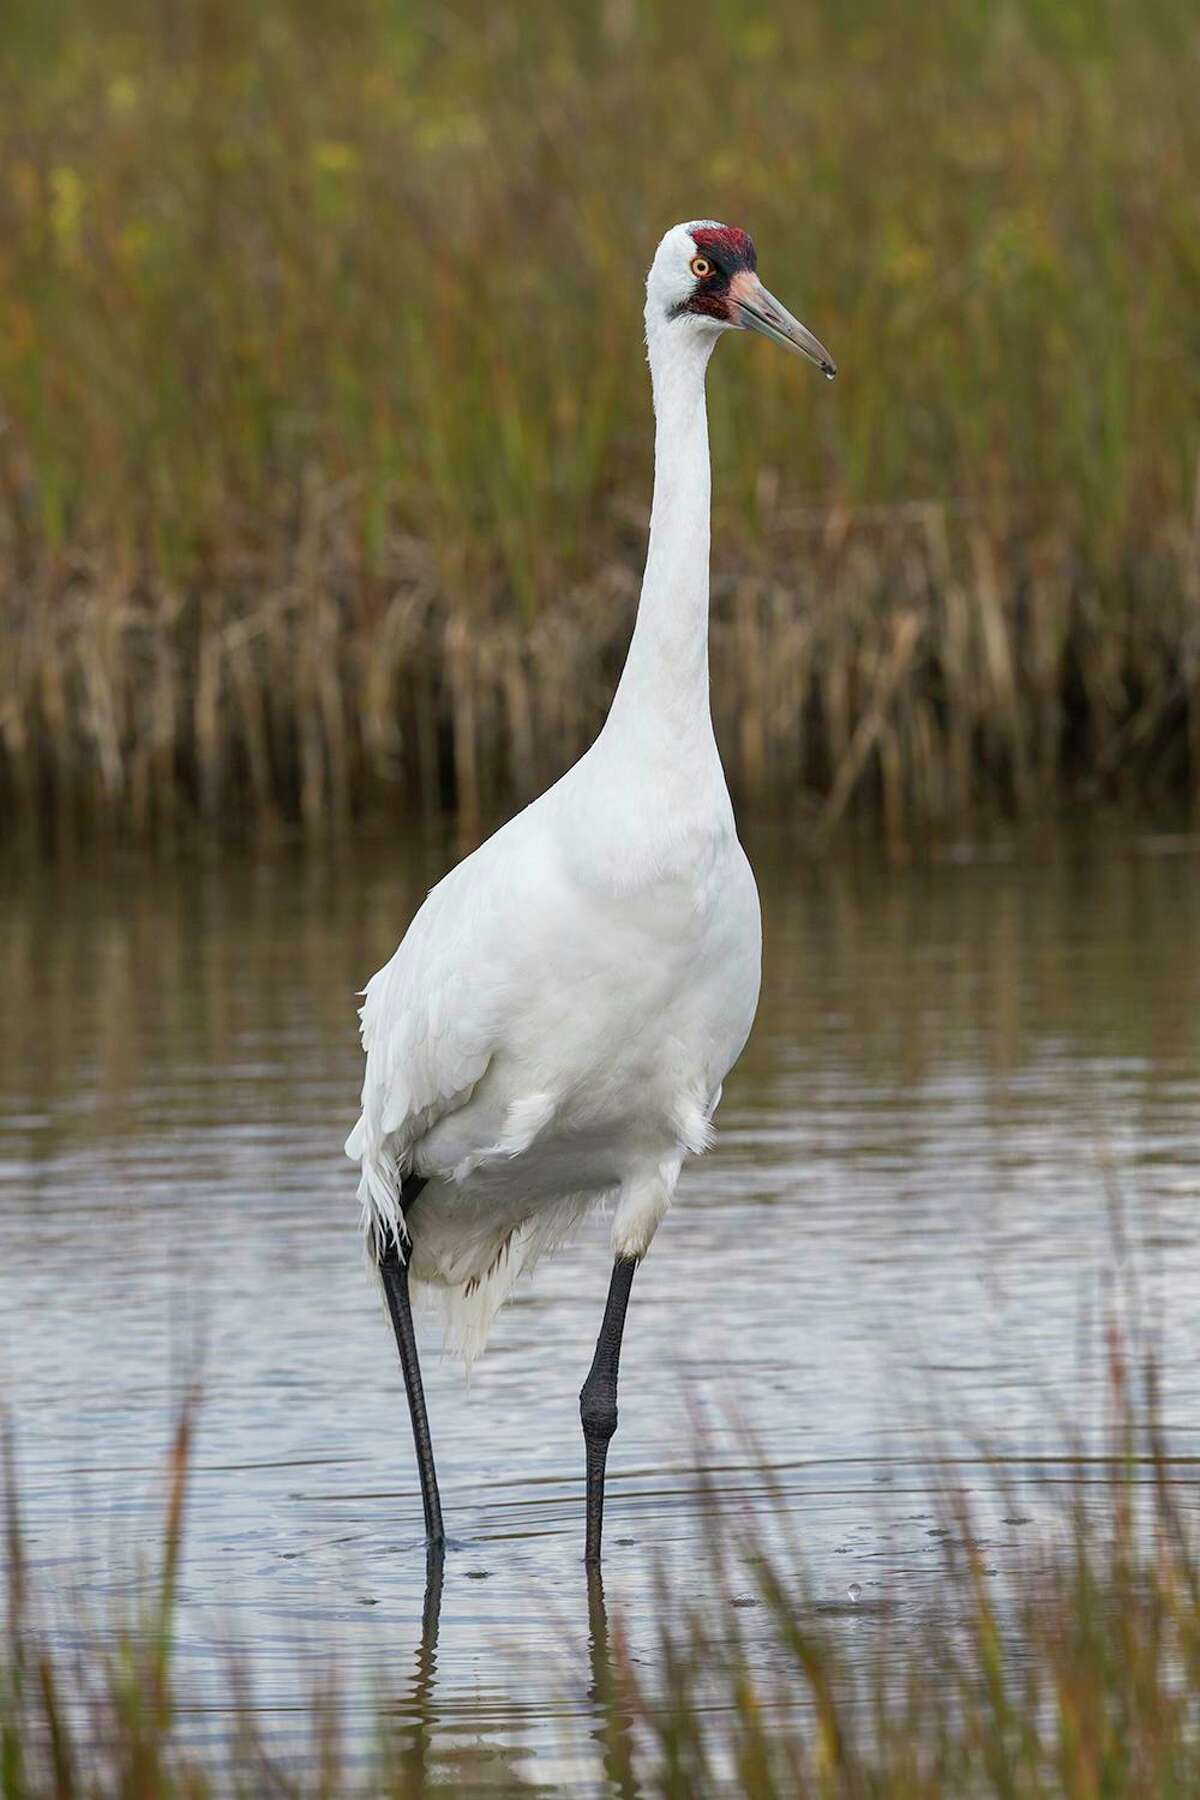 Whooping cranes are the tallest birds in North America. Their recovery depends on building flock numbers in different locations. This bird is a member of the flock that winters at Aransas National Wildlife Refuge.